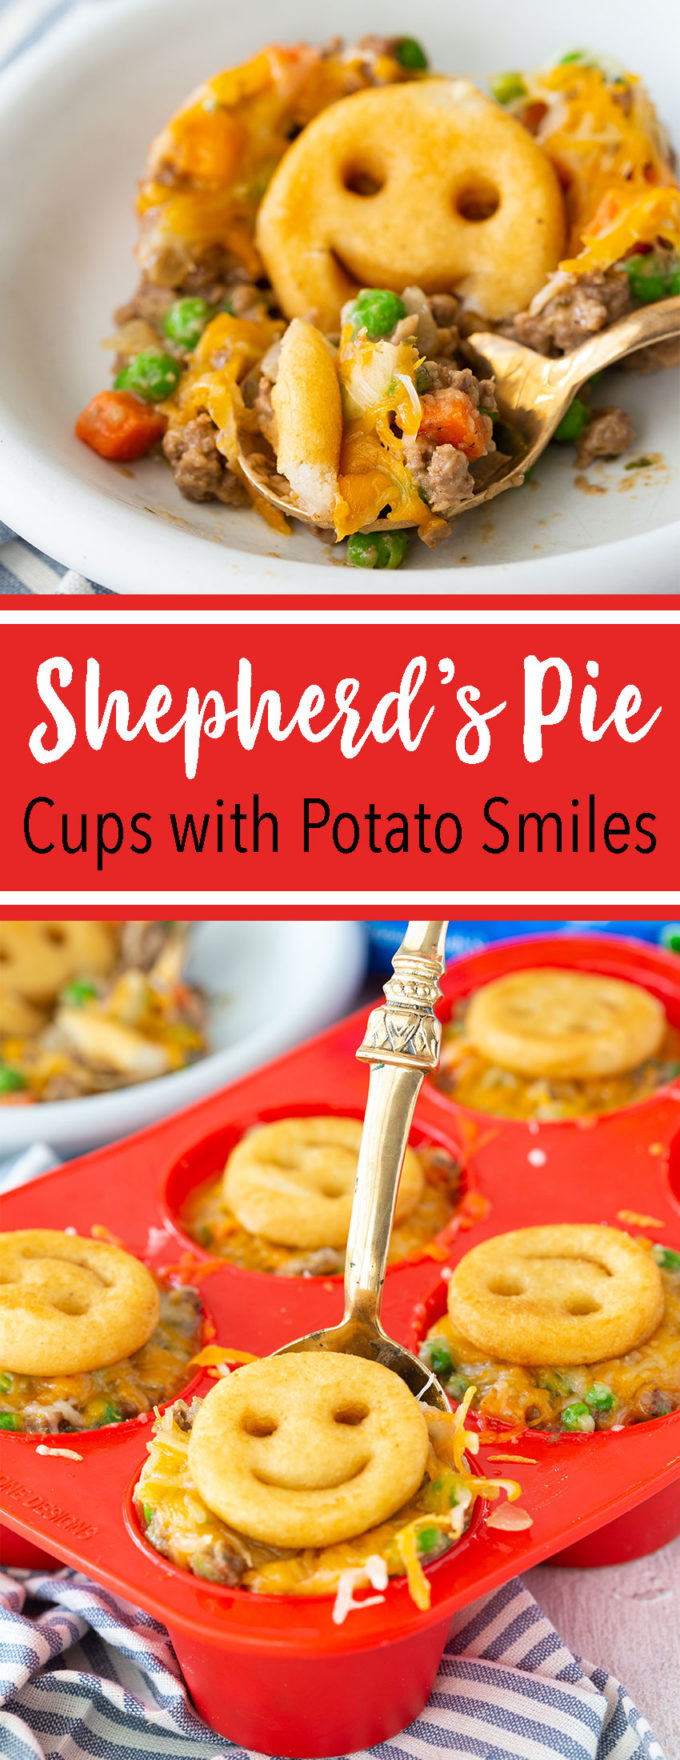 Shepherd's Pie mini cups